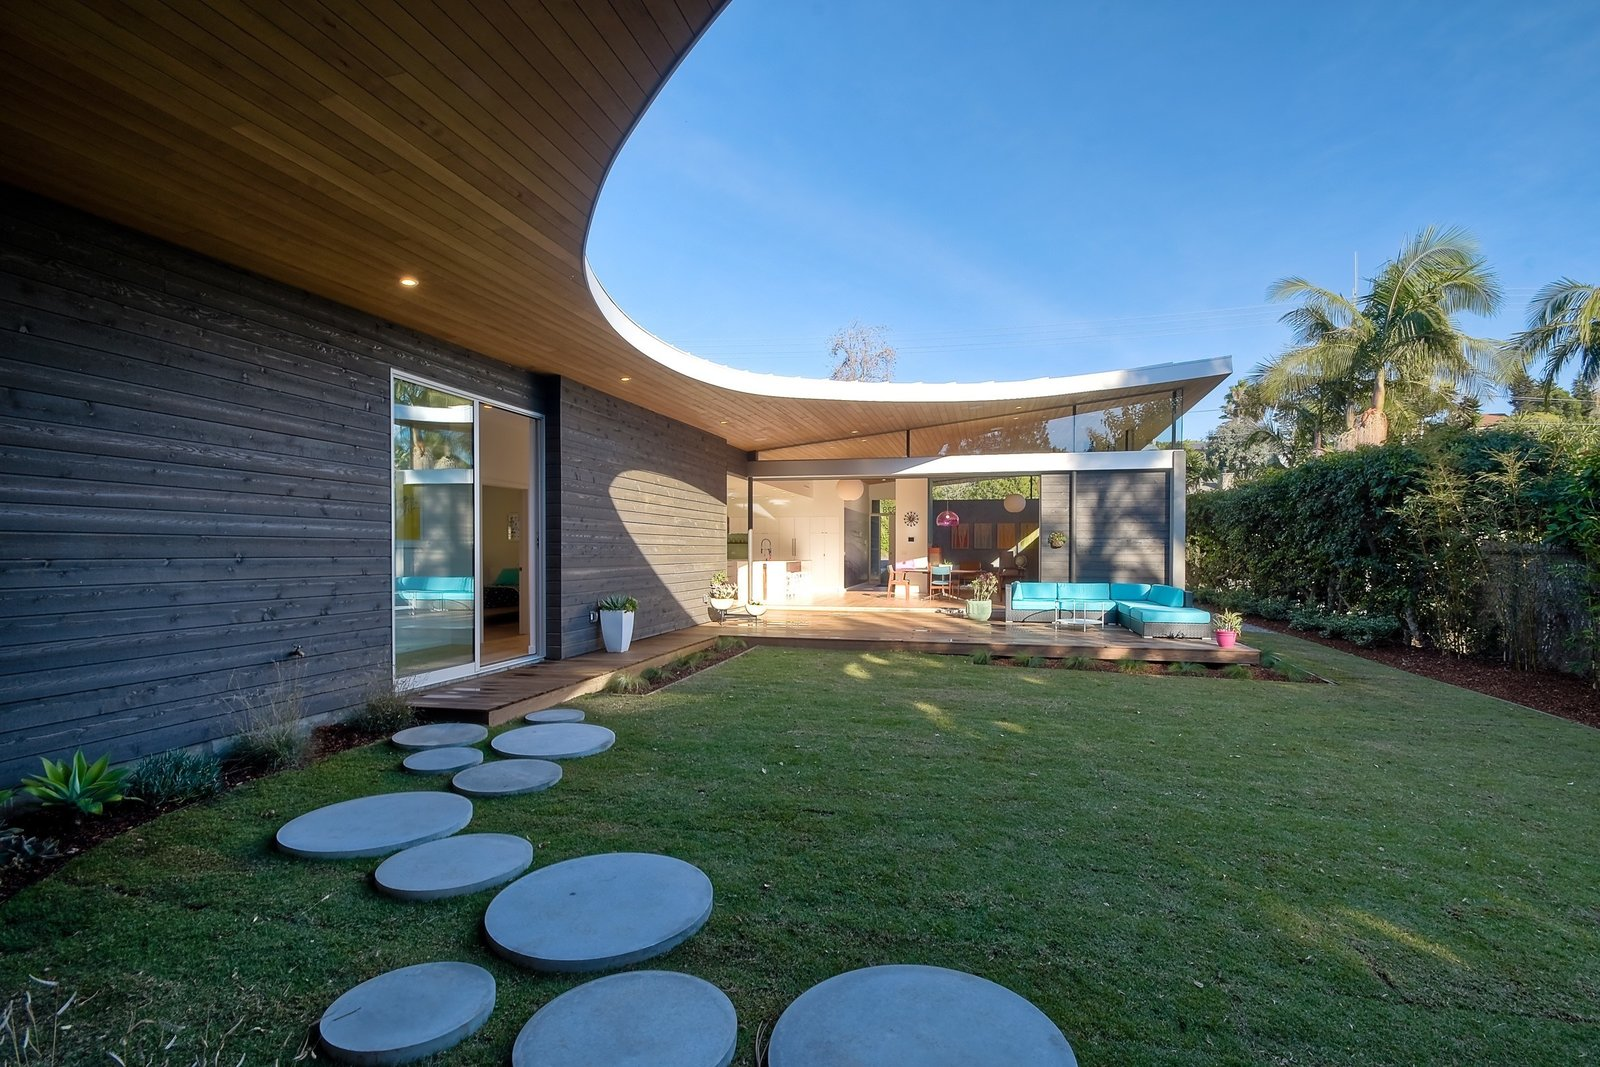 Avocado Acres House by Surfside Projects